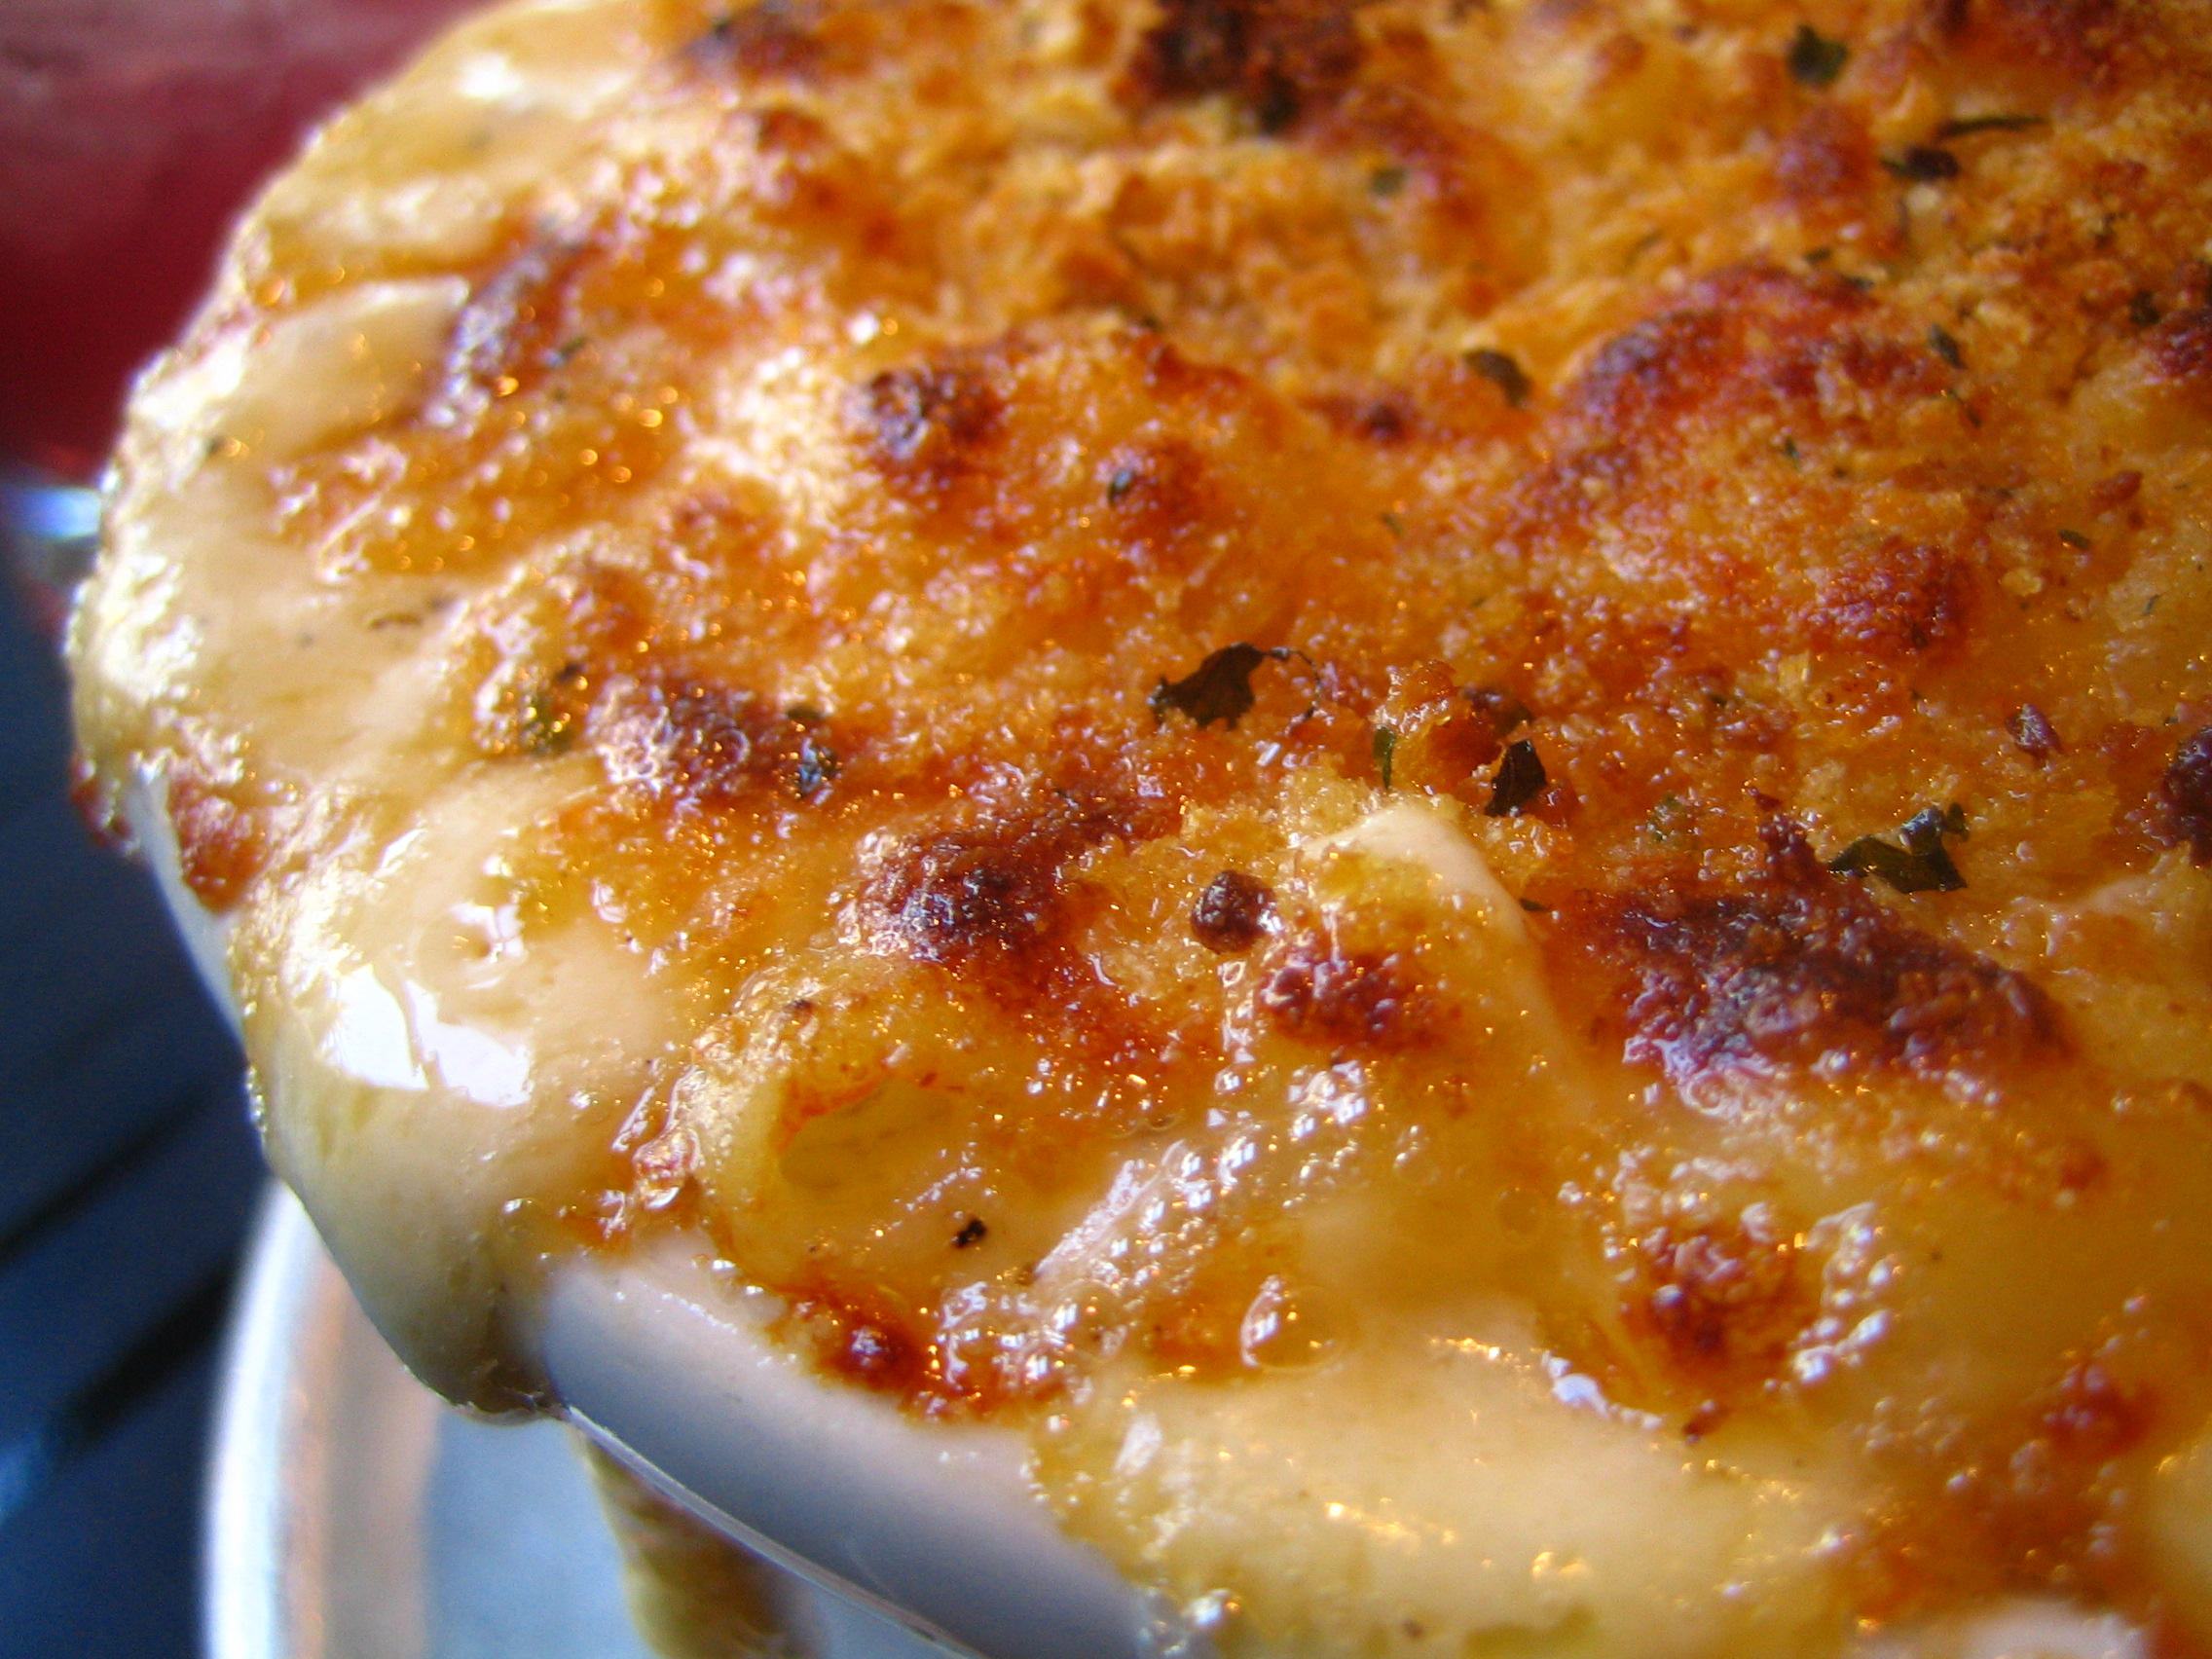 ... Part 3: Gourmet Mac and Cheese - Broke-Ass Stuart's Goddamn Website